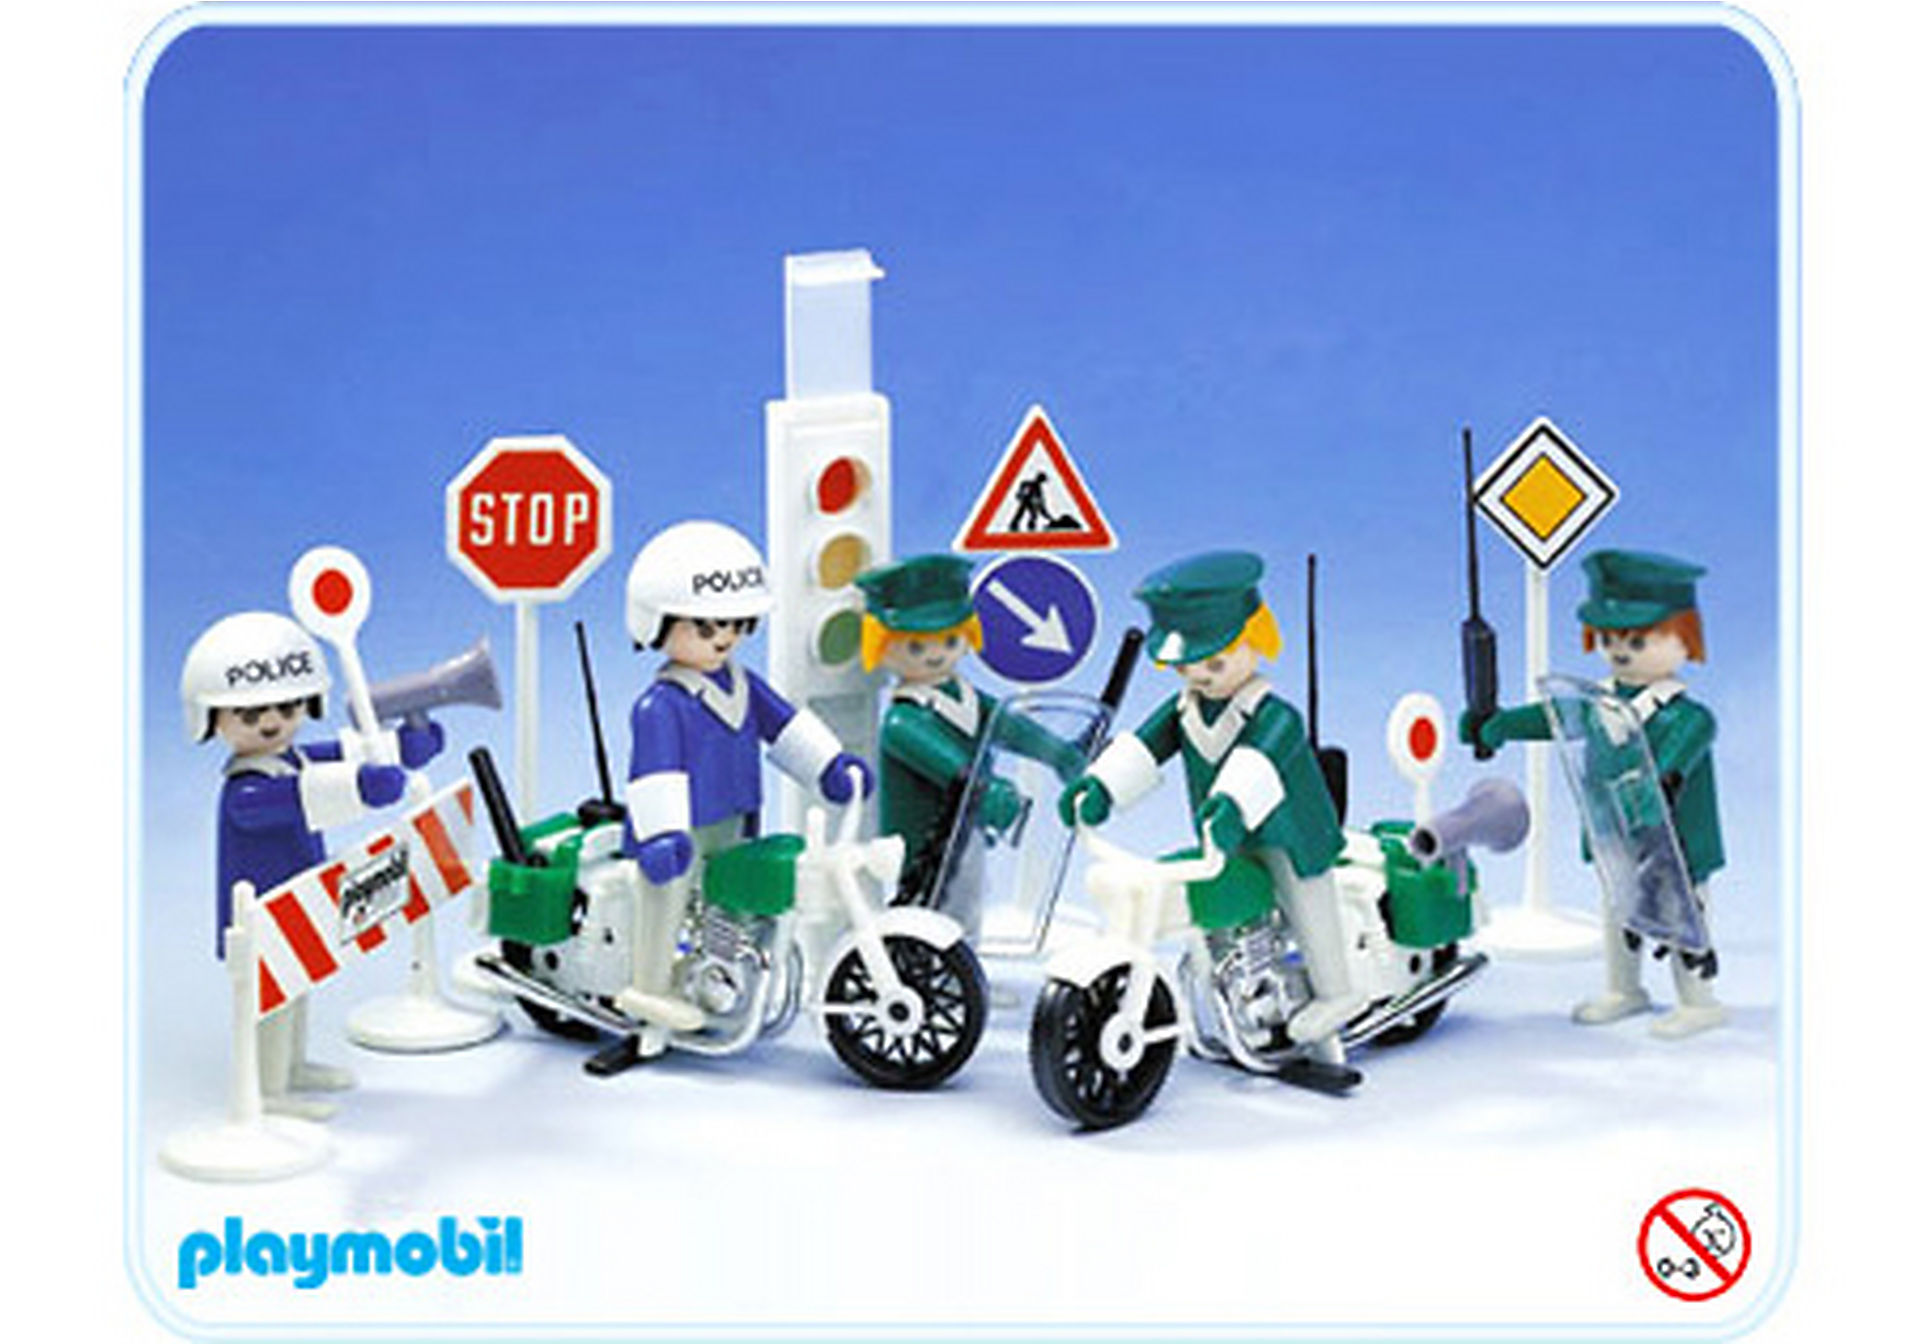 http://media.playmobil.com/i/playmobil/3488-A_product_detail/Polizei